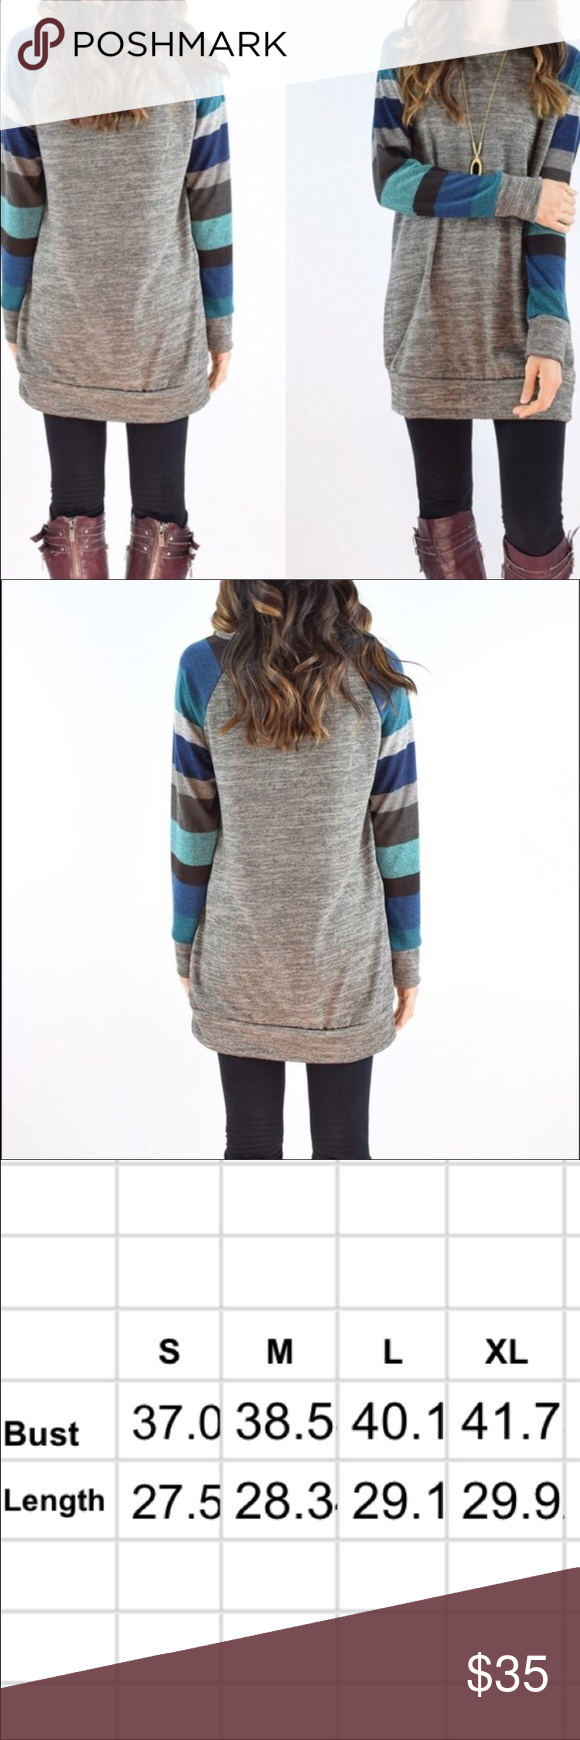 Long light cotton sweater Boutique | Long lights, Cotton sweater ...